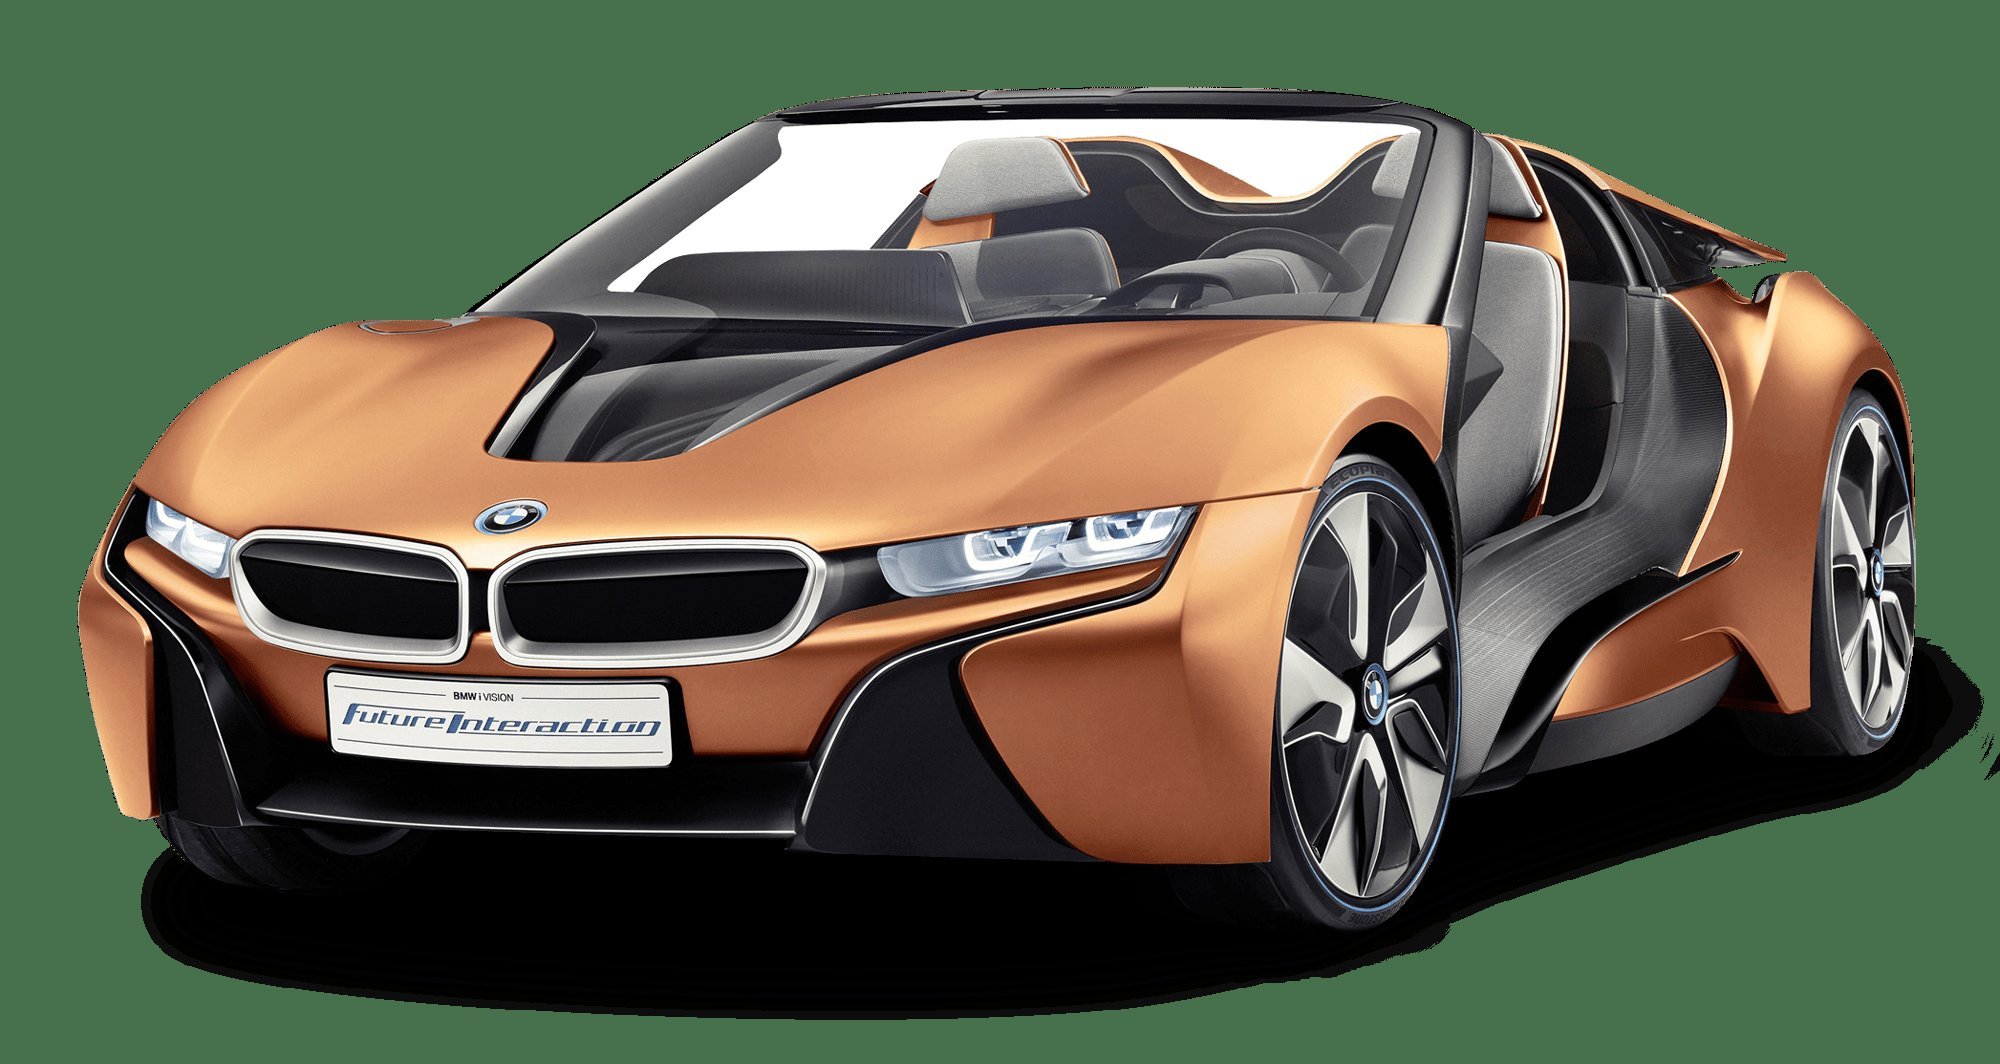 Latest Bmw Png Transparent Images Group With 57 Items Free Download